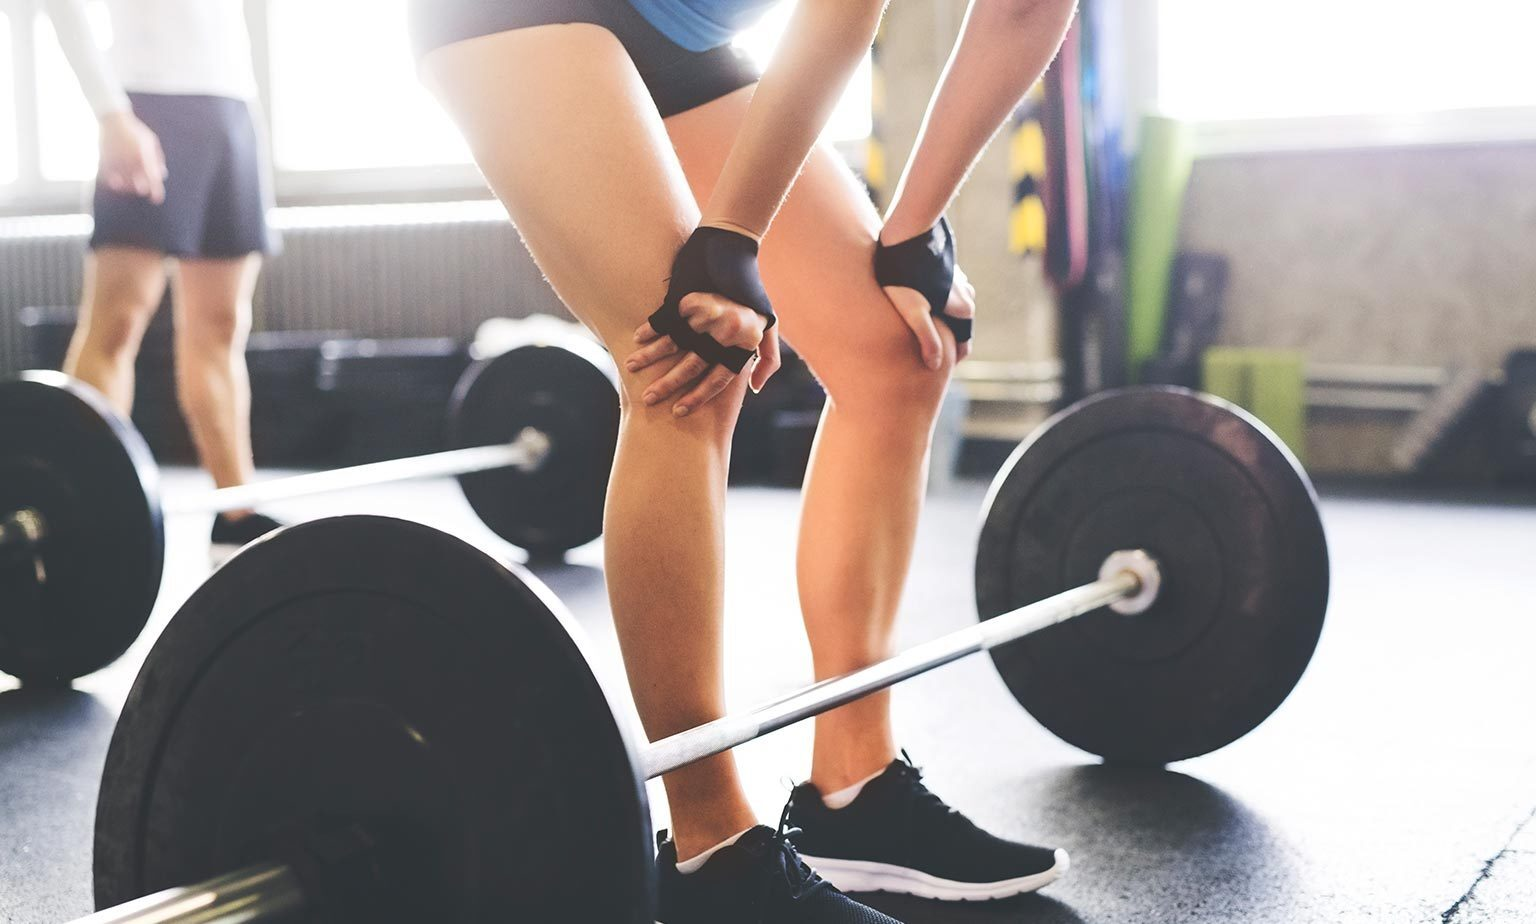 Top Picks in Workout Equipment